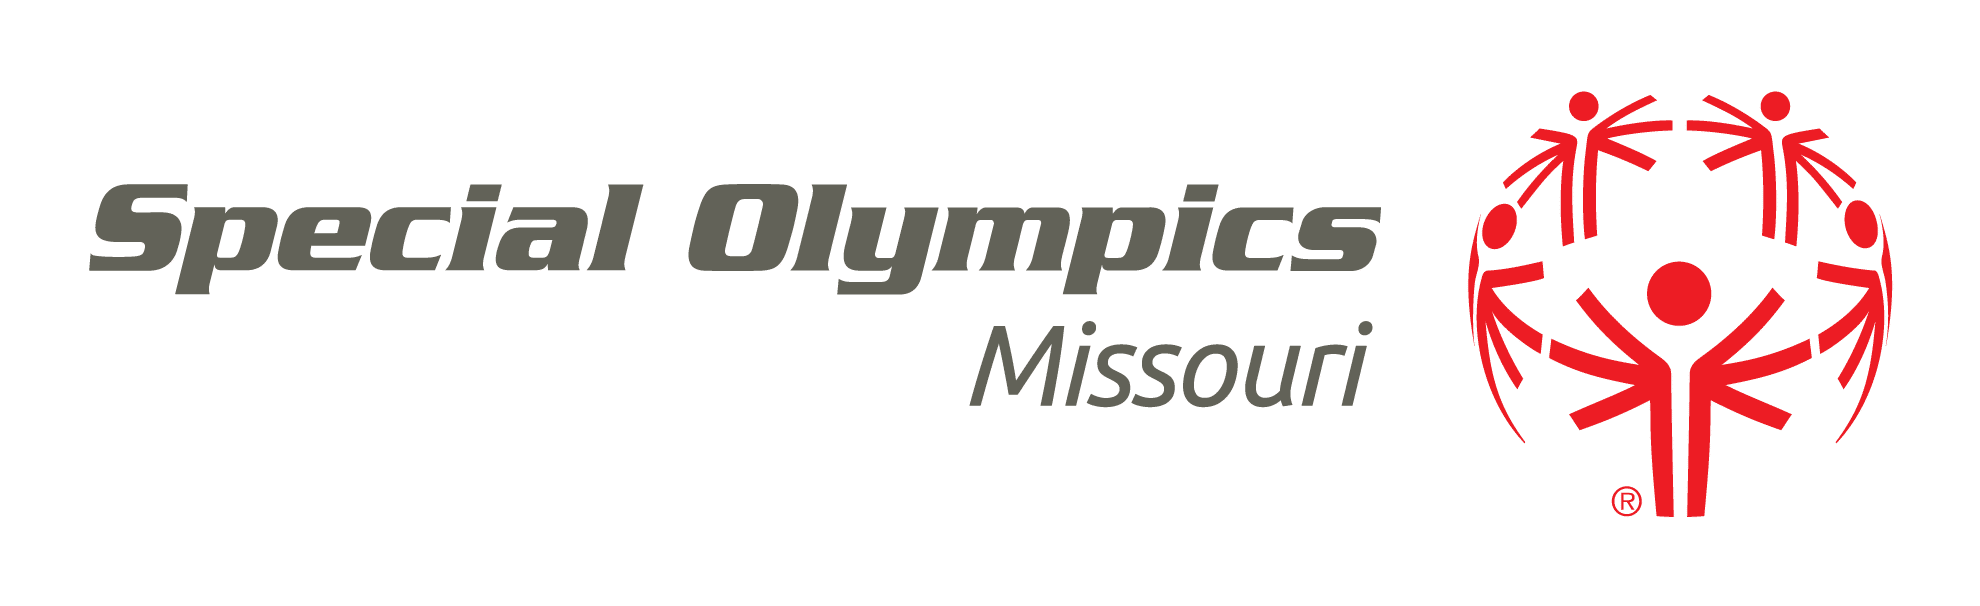 Special Olympics Missouri logo Red and Gray (Horizontal two lines)